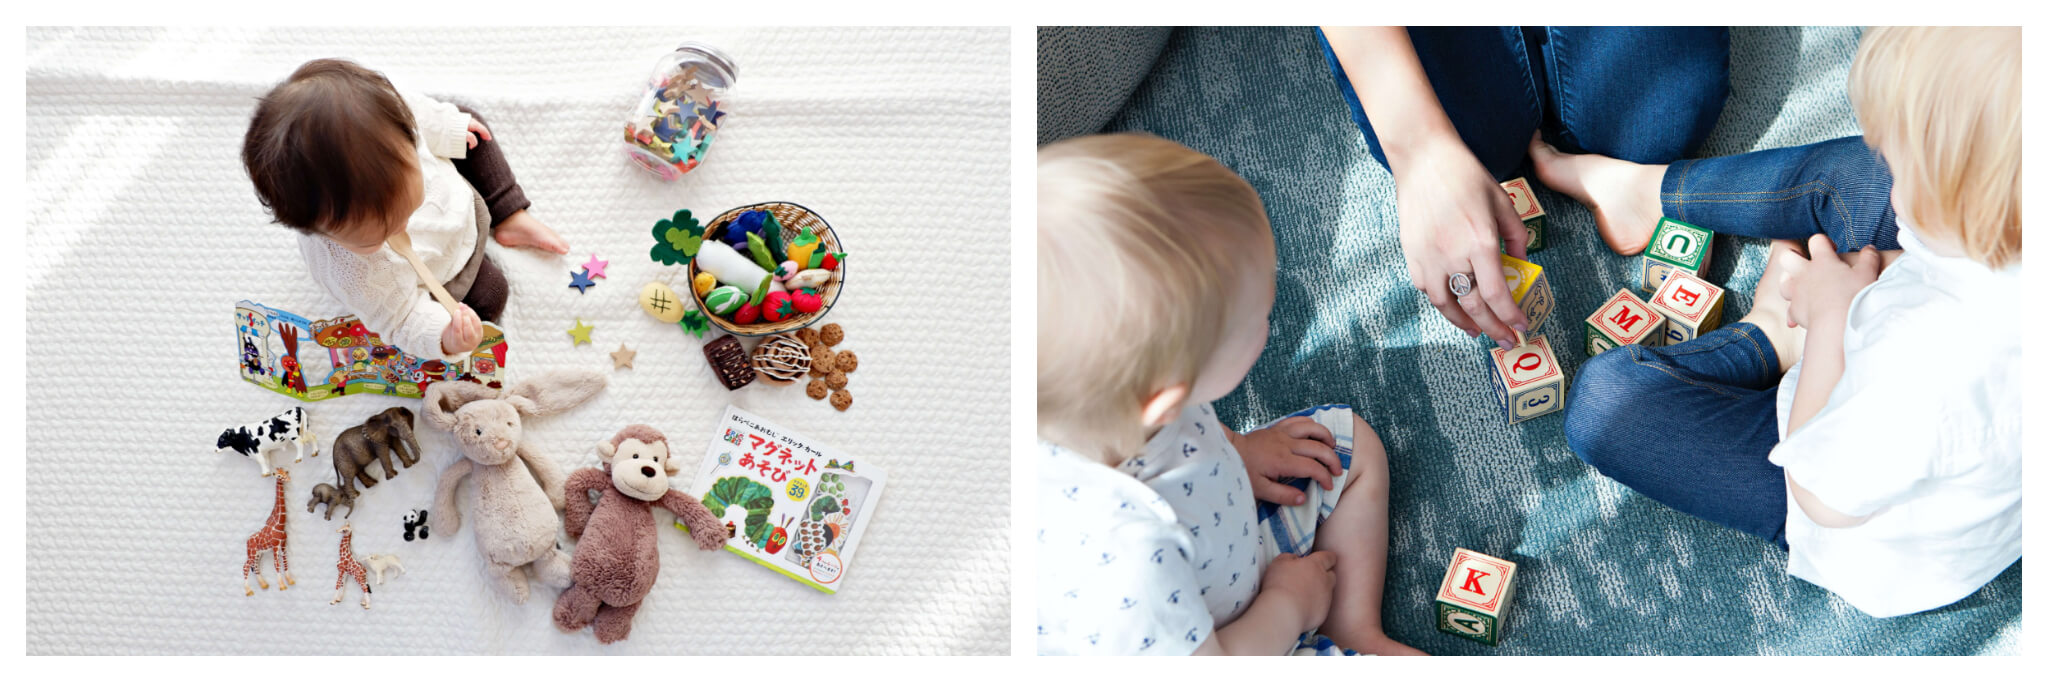 Left: An overhead shot of a baby playing with stuffed animals, books, and plastic animal toys atop a white surface, Right: A parent and two young children play with letter blocks.